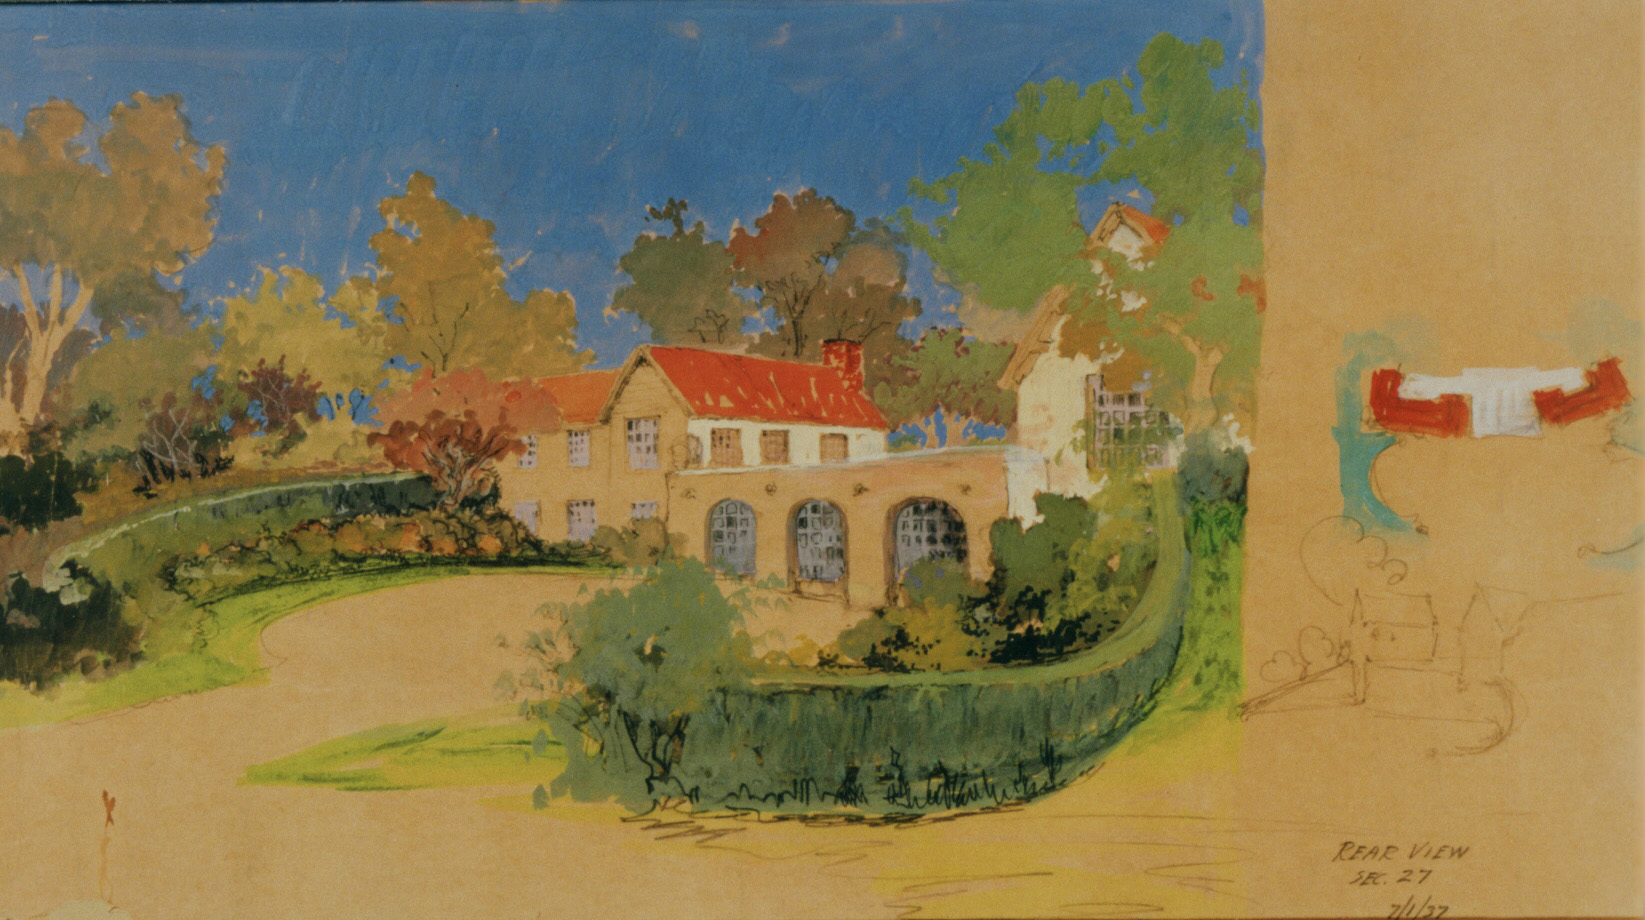 Maybeck & White, Brooks House, View of Rear Entry, 1 Jul1937, Gouache, graphite on kraft paper, 16 x 27 in.